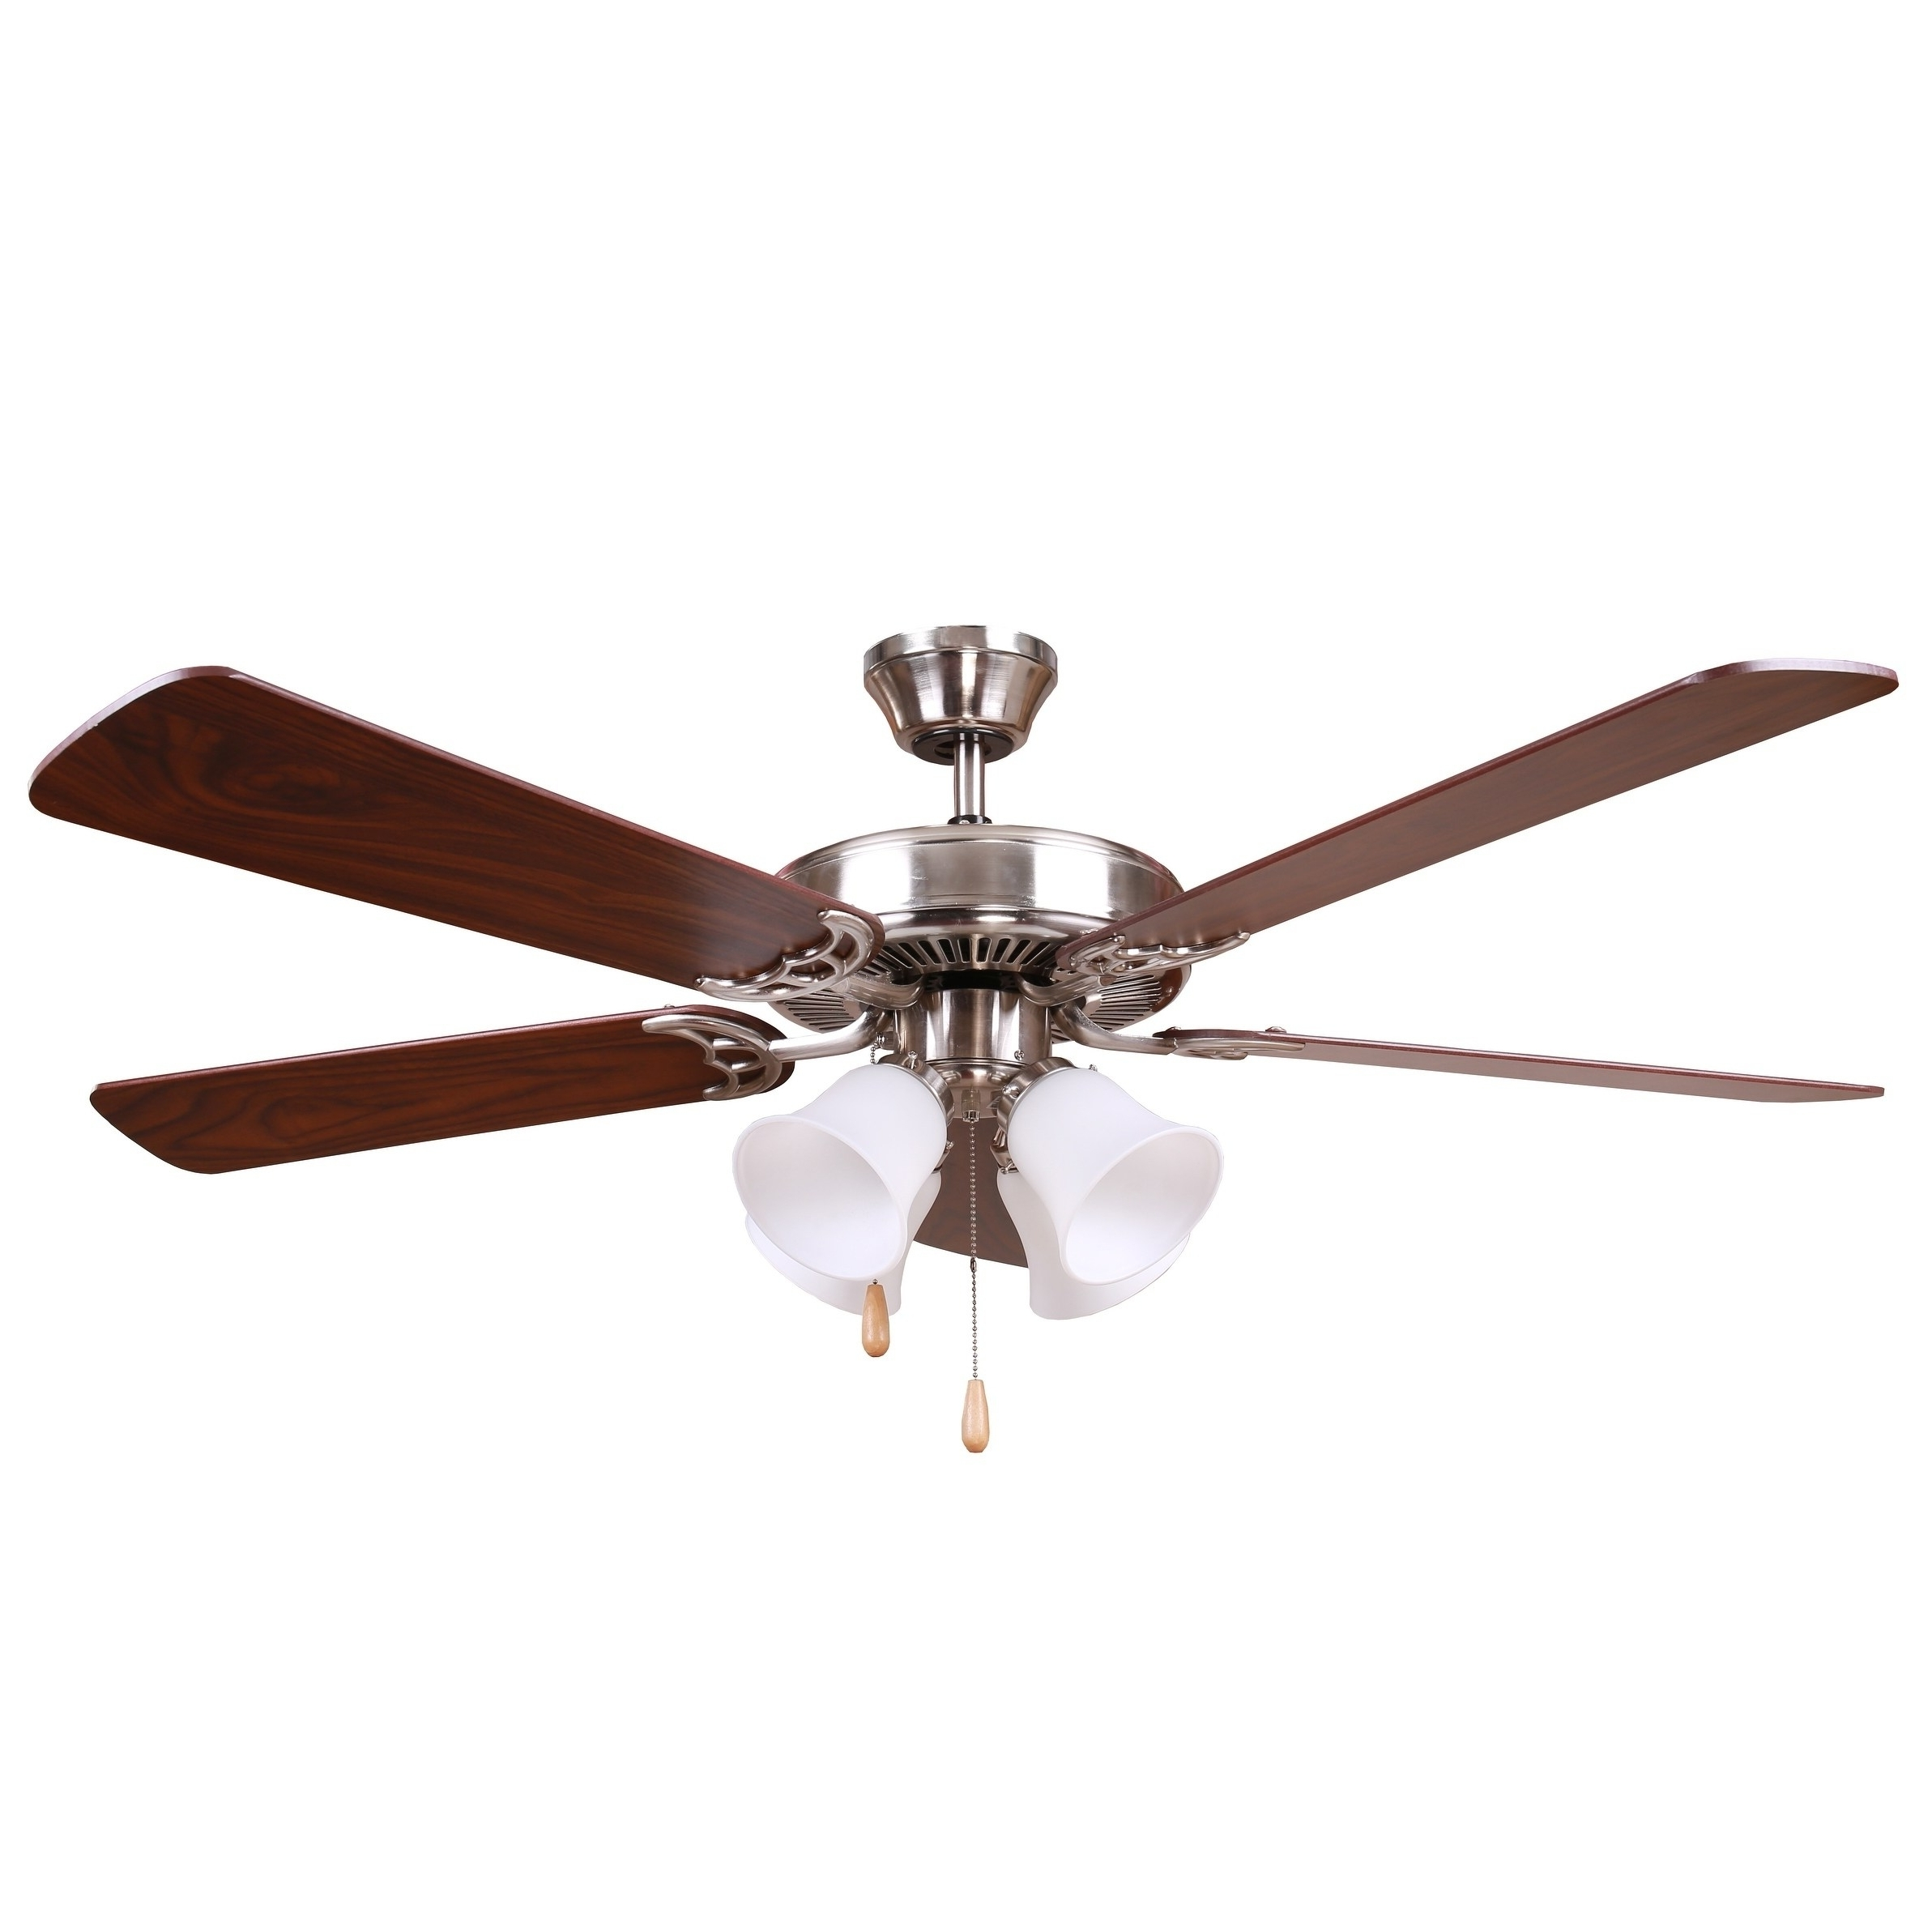 Preferred Outdoor Ceiling Fans With Removable Blades Regarding Shop Y Decor Bright Brushed Nickel Finish 52 Inch Ceiling Fan – Free (View 17 of 20)